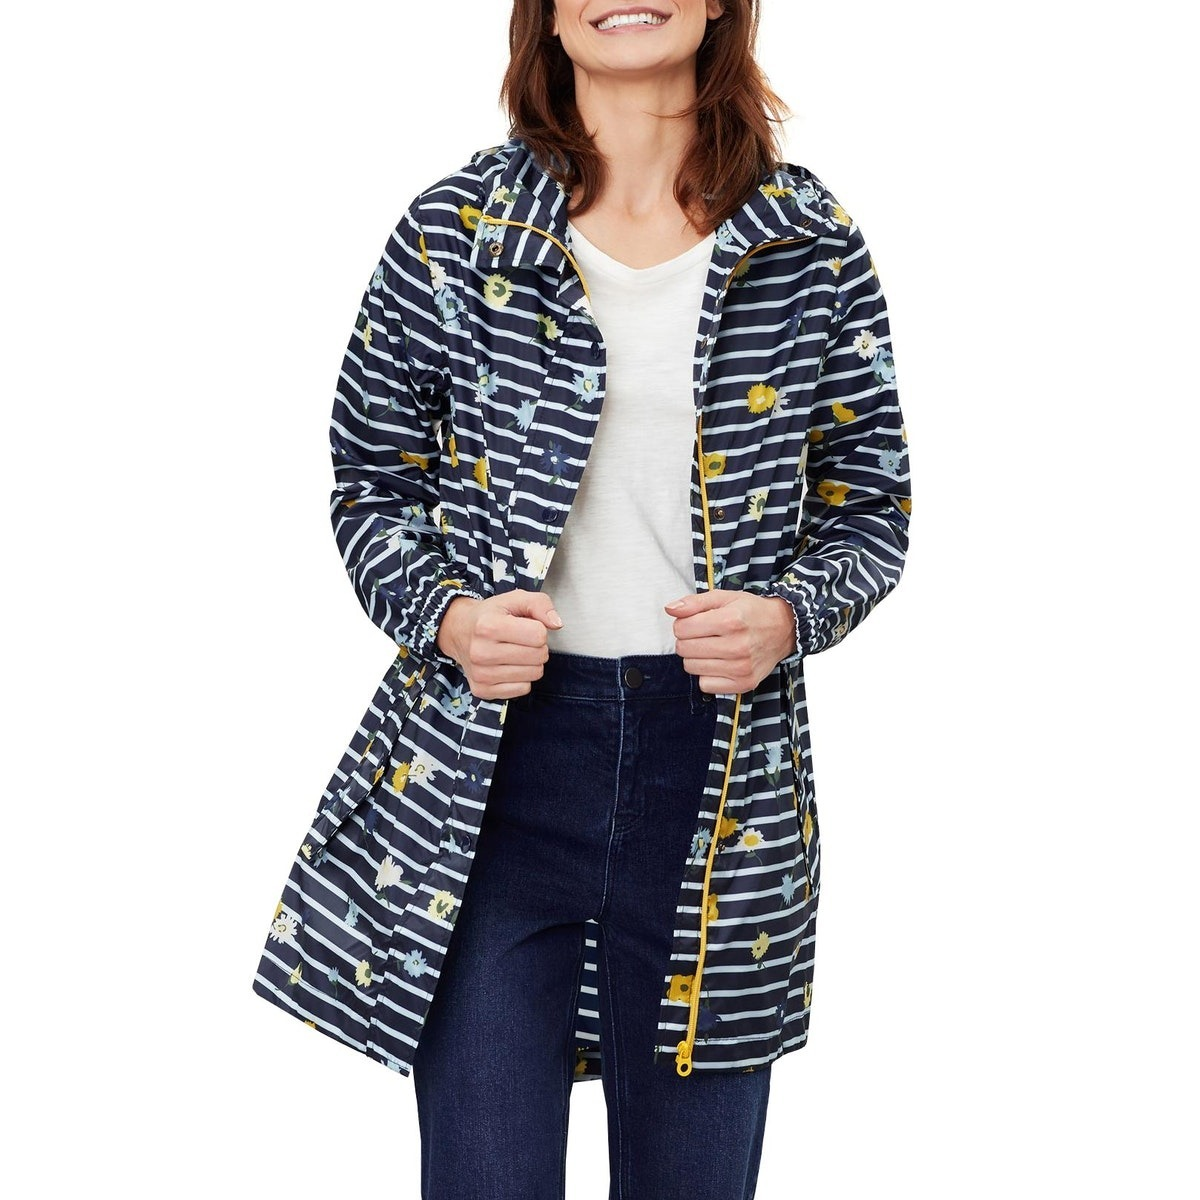 shop joules clothing clothing